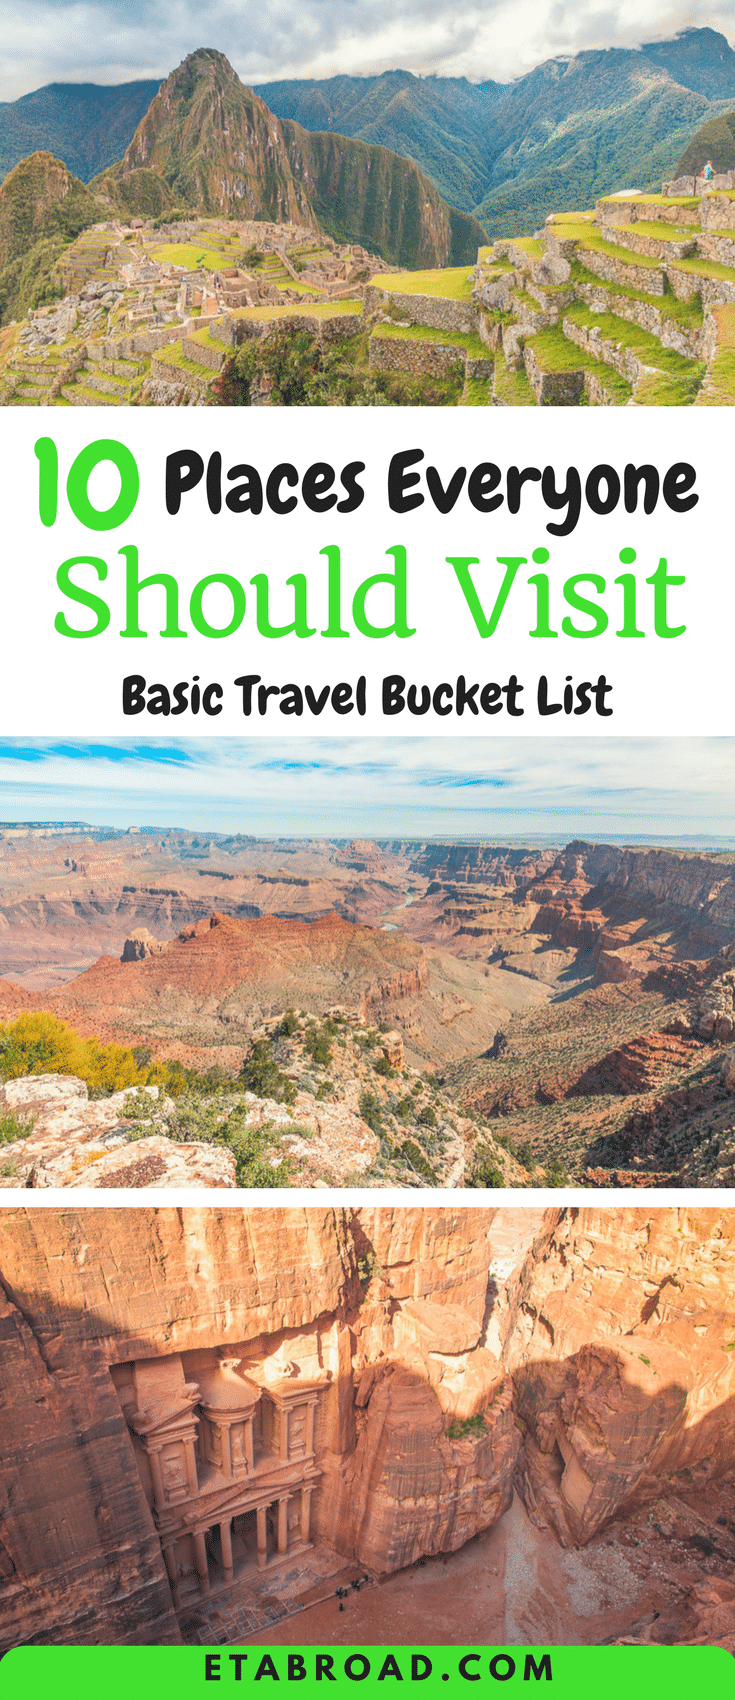 10 Best Travel Places | Travel Bucket List | Places Everyone Should Visit | Must-See Places on The Planet | Best Places on the Earth